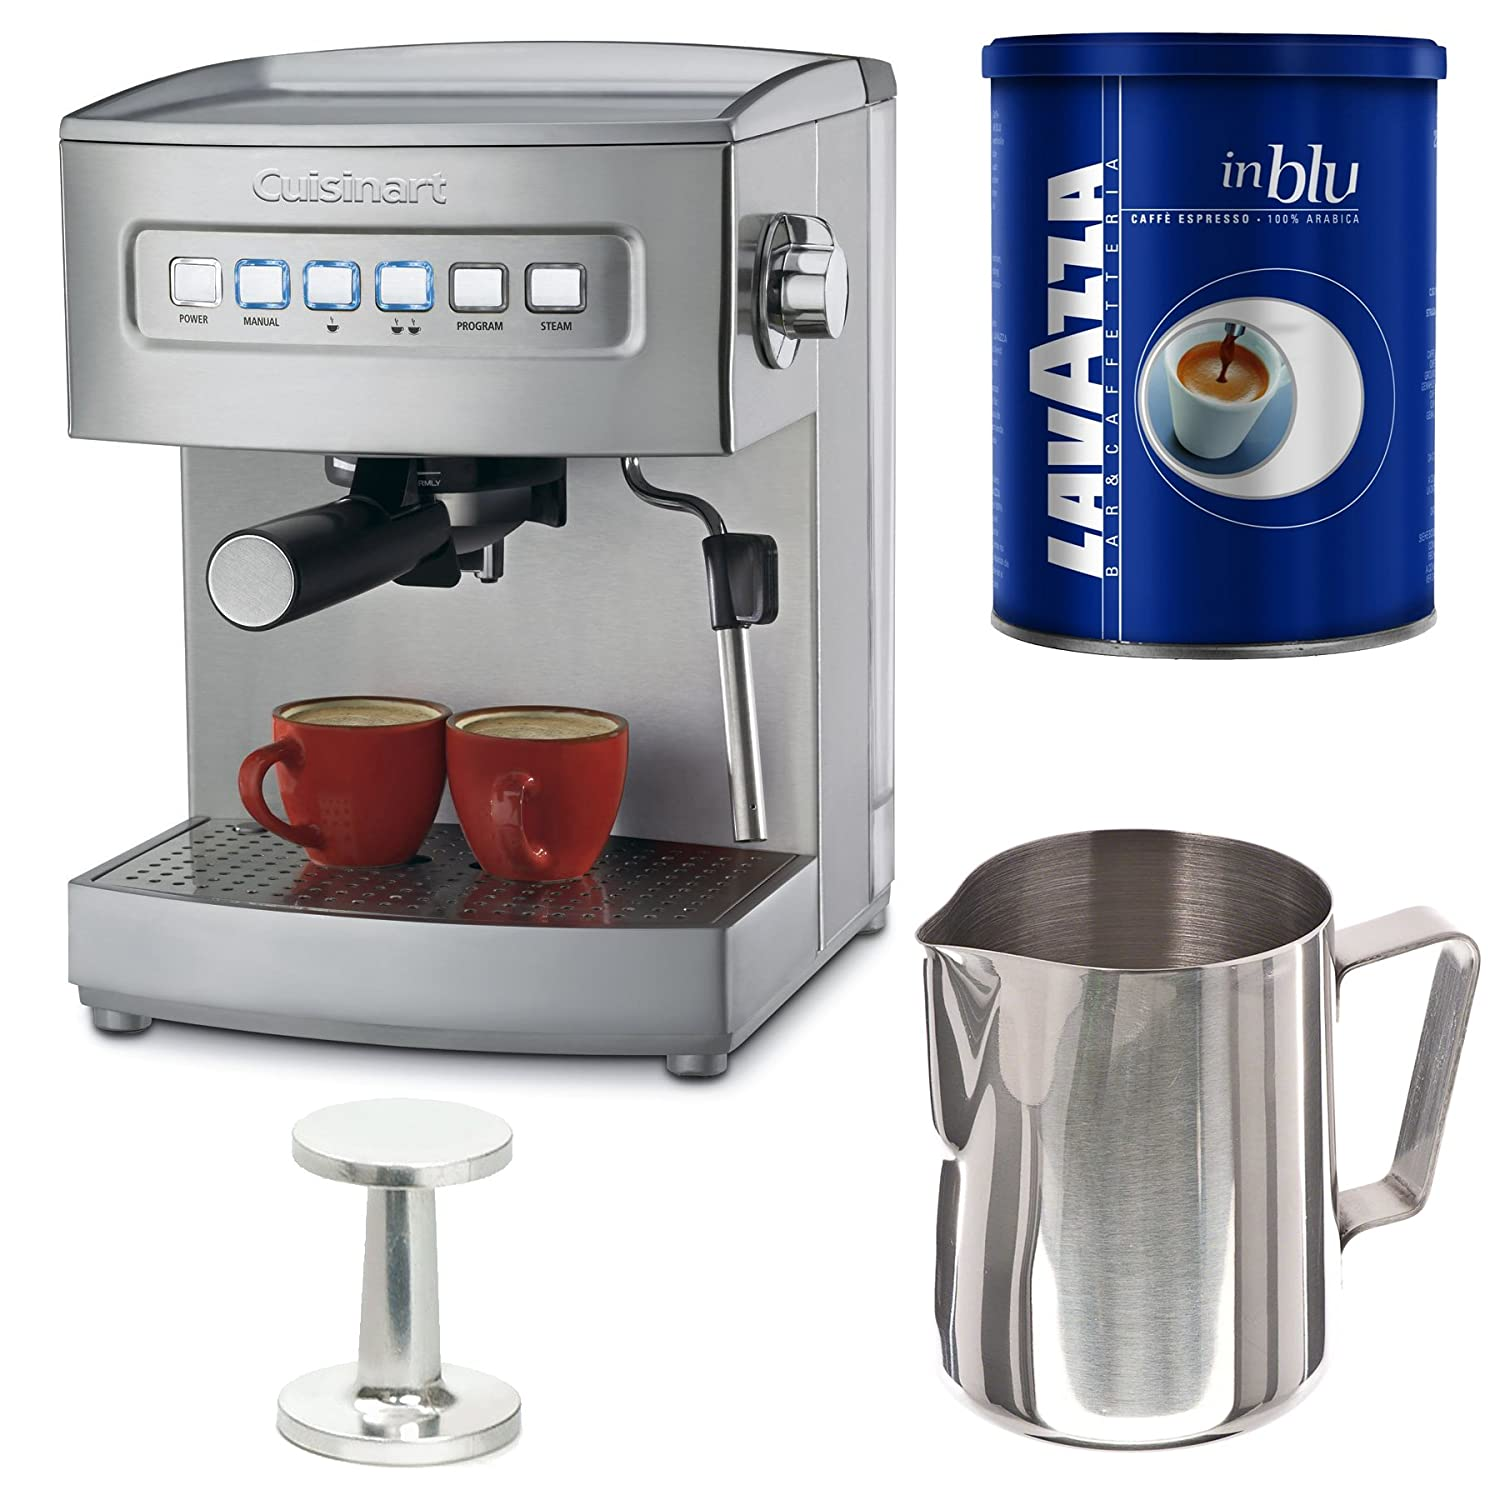 Cuisinart EM-200 Cuisinart Programmable 15-Bar Espresso Maker with Espresso Tamper (50/60mm Size) + 20 oz Frothing Pitcher and Lavazza In Blu Espresso Coffee (8.8oz Can) Bundle portable manual coffee maker handheld espresso coffee machine